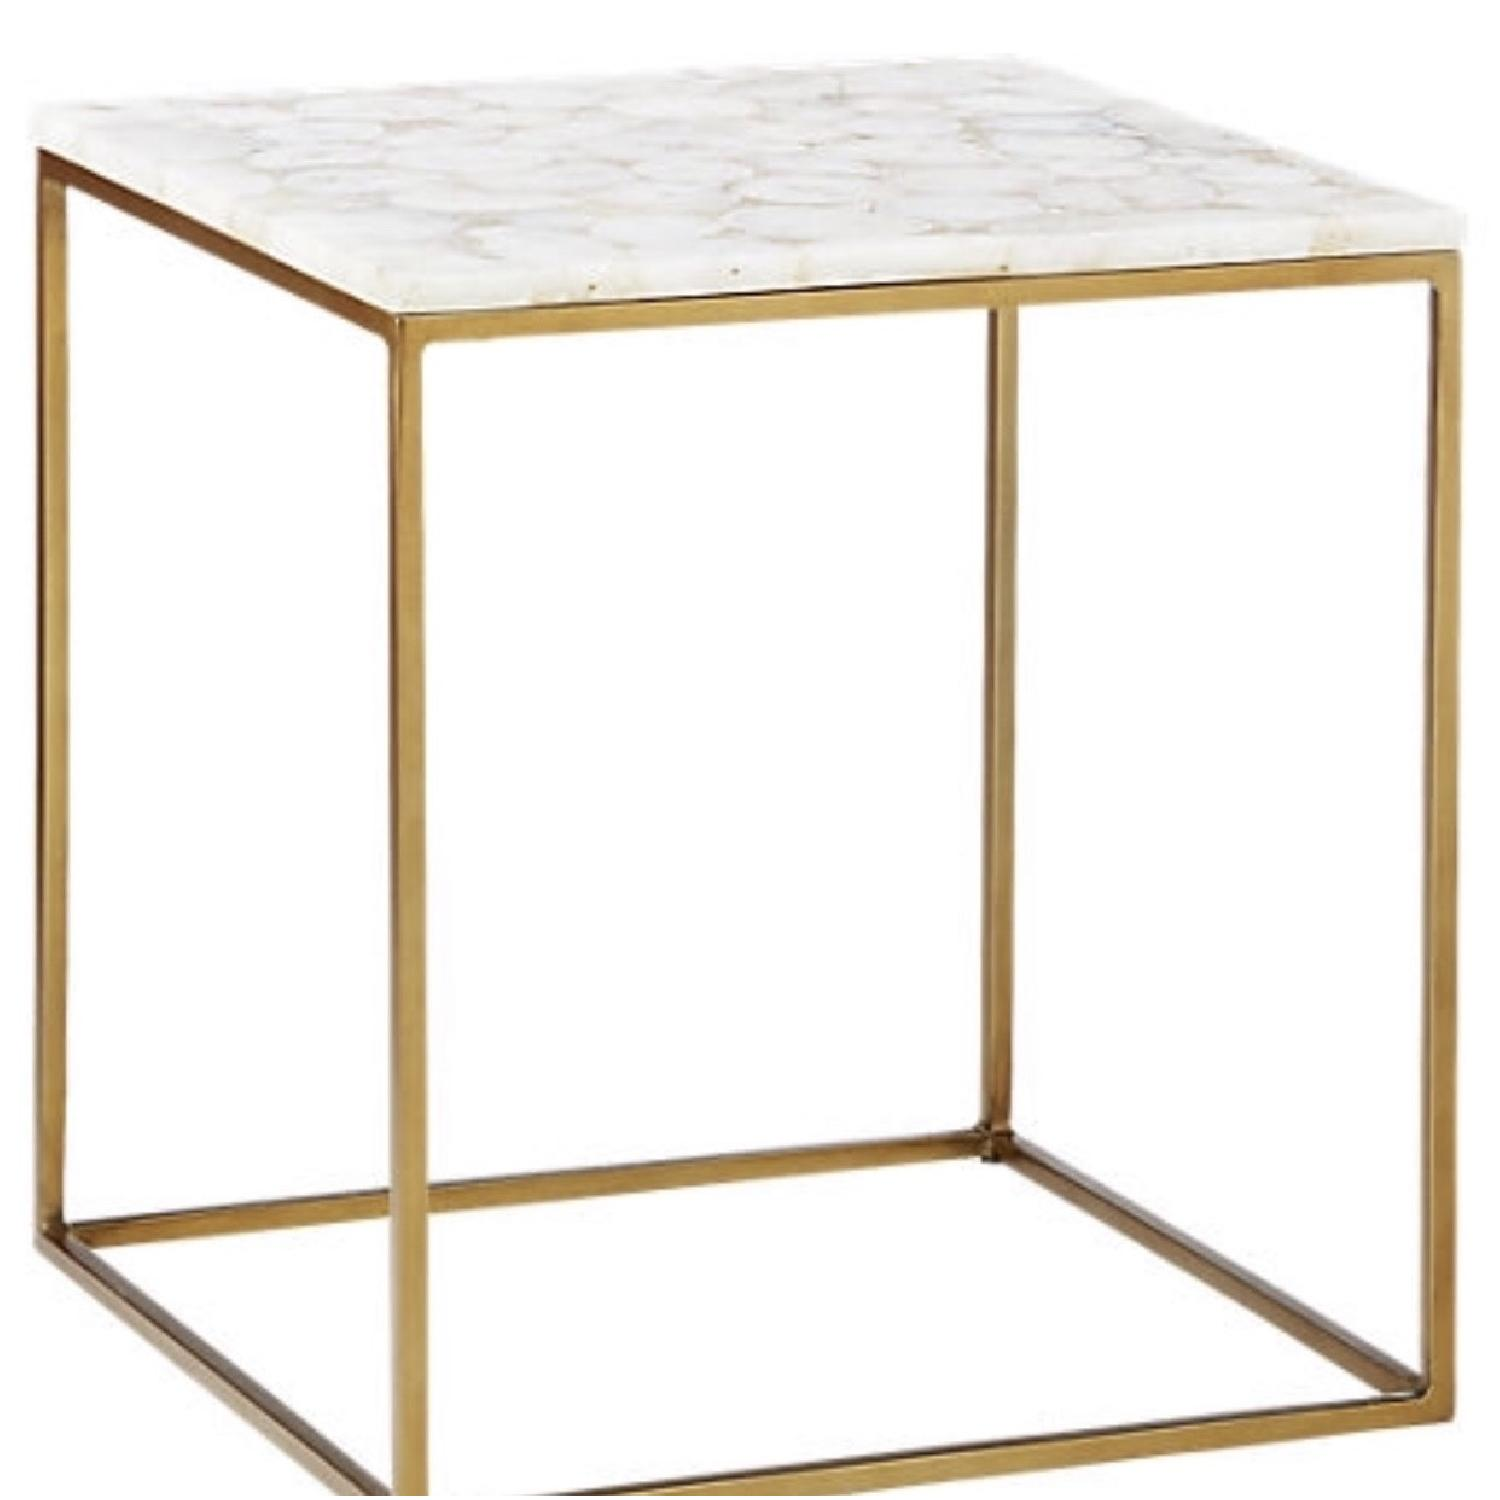 CB2 Iris White Agate Side Table